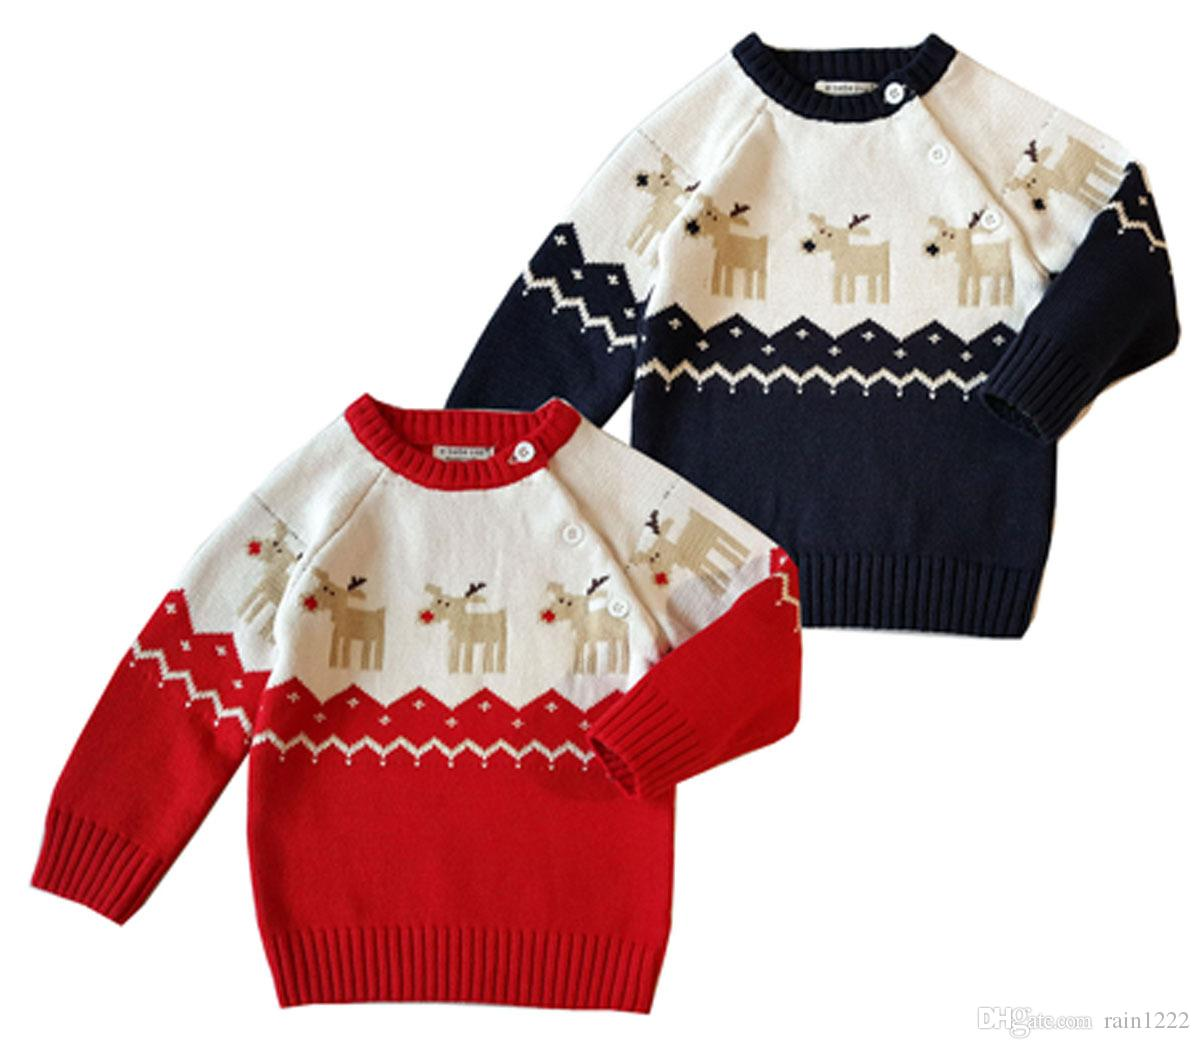 20a007bed22 Christmas Knitted Sweaters Pullover Kids Children Knit Deer Design Jumper  Sweater With Buttons Boys Girls 100% Cotton Knitted Clothing Boy Sweater  Knitting ...